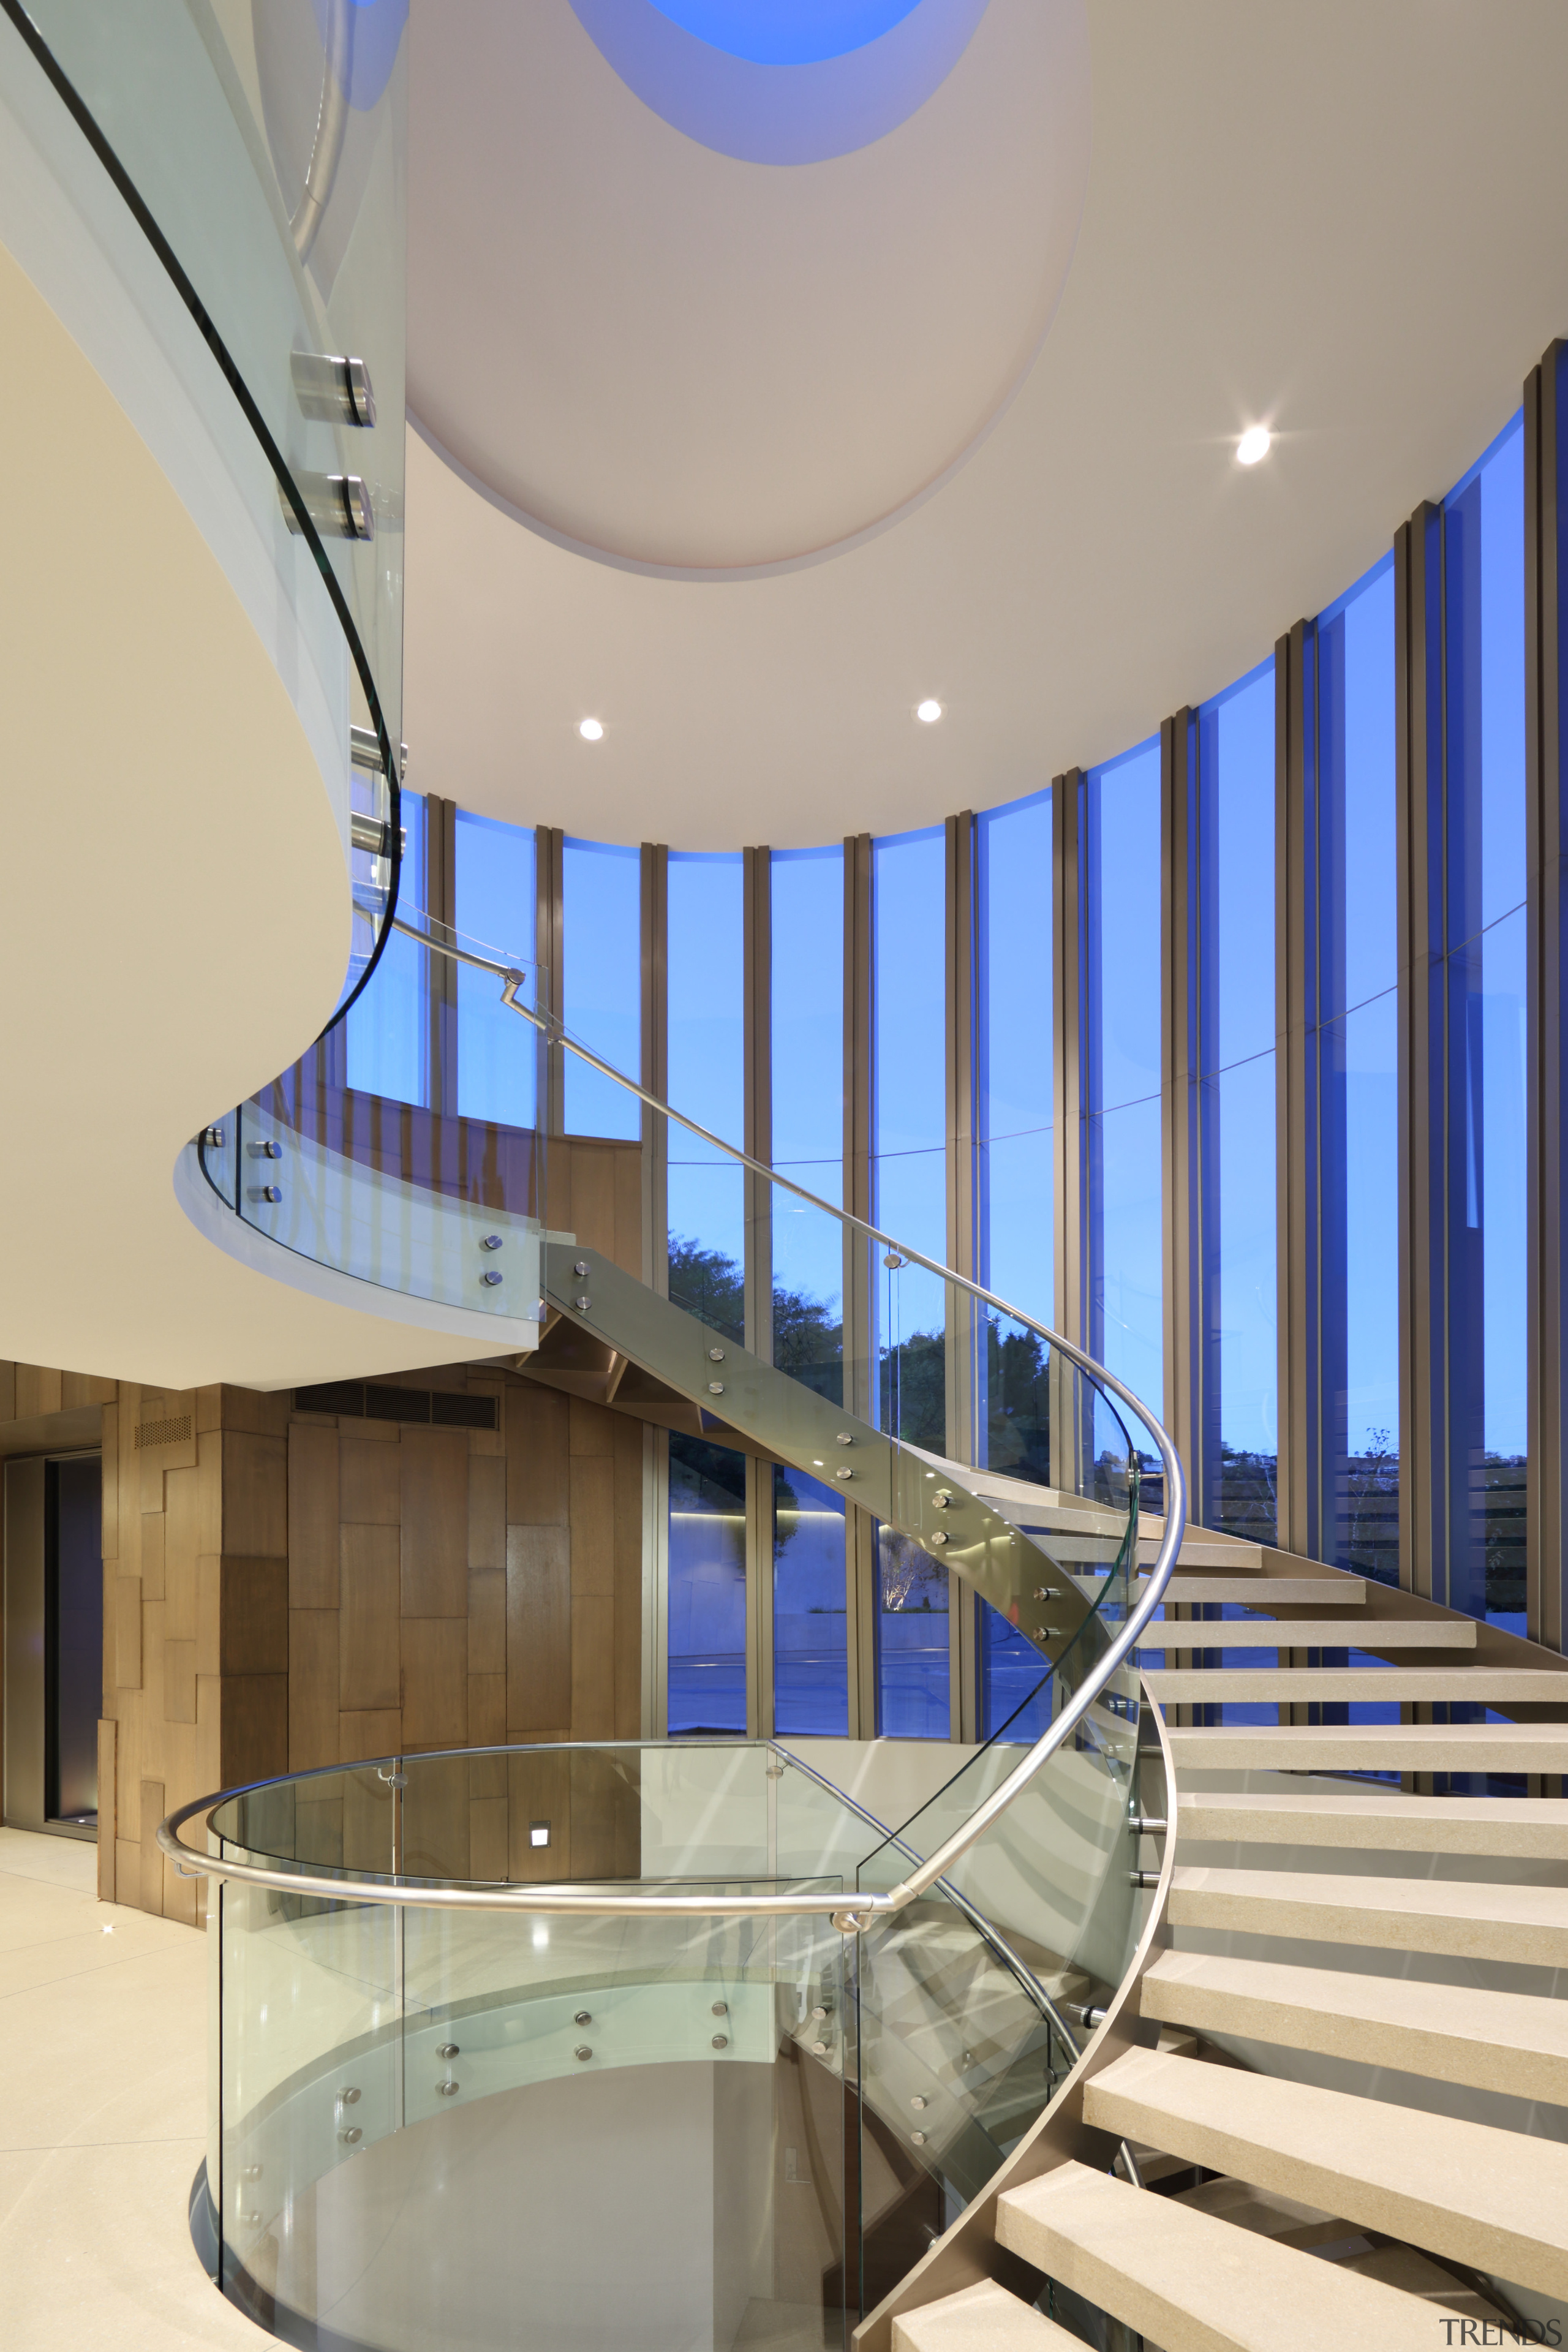 Nestled in the stair tower seen from the apartment, architecture, ceiling, daylighting, estate, glass, handrail, interior design, leisure centre, lobby, real estate, stairs, structure, gray